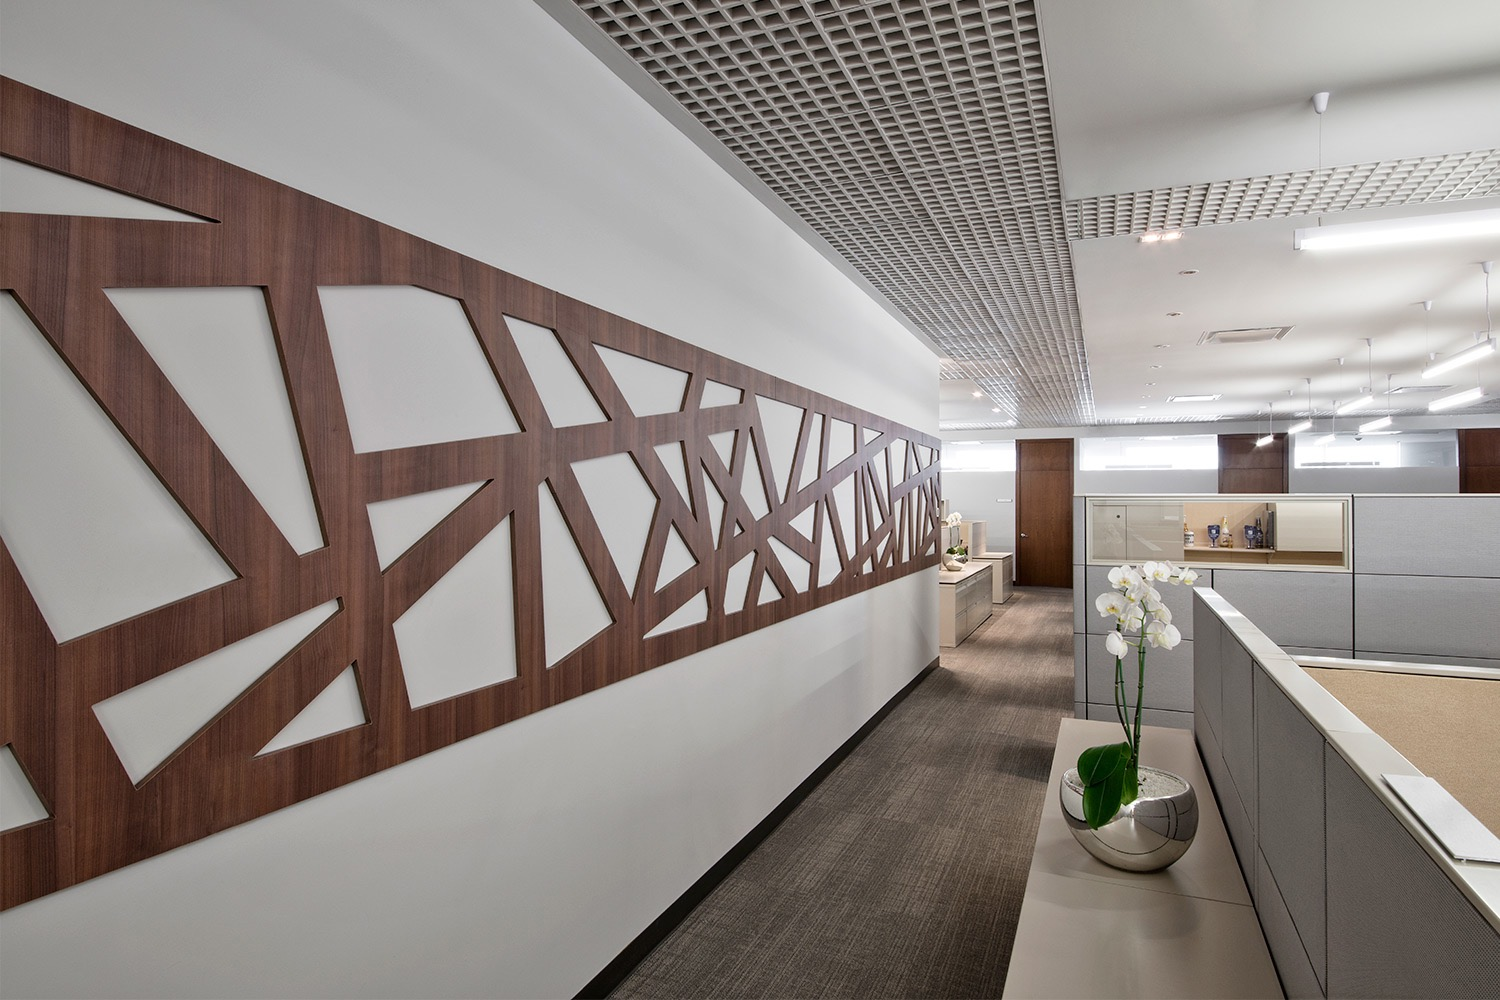 constellation-brands-office-8